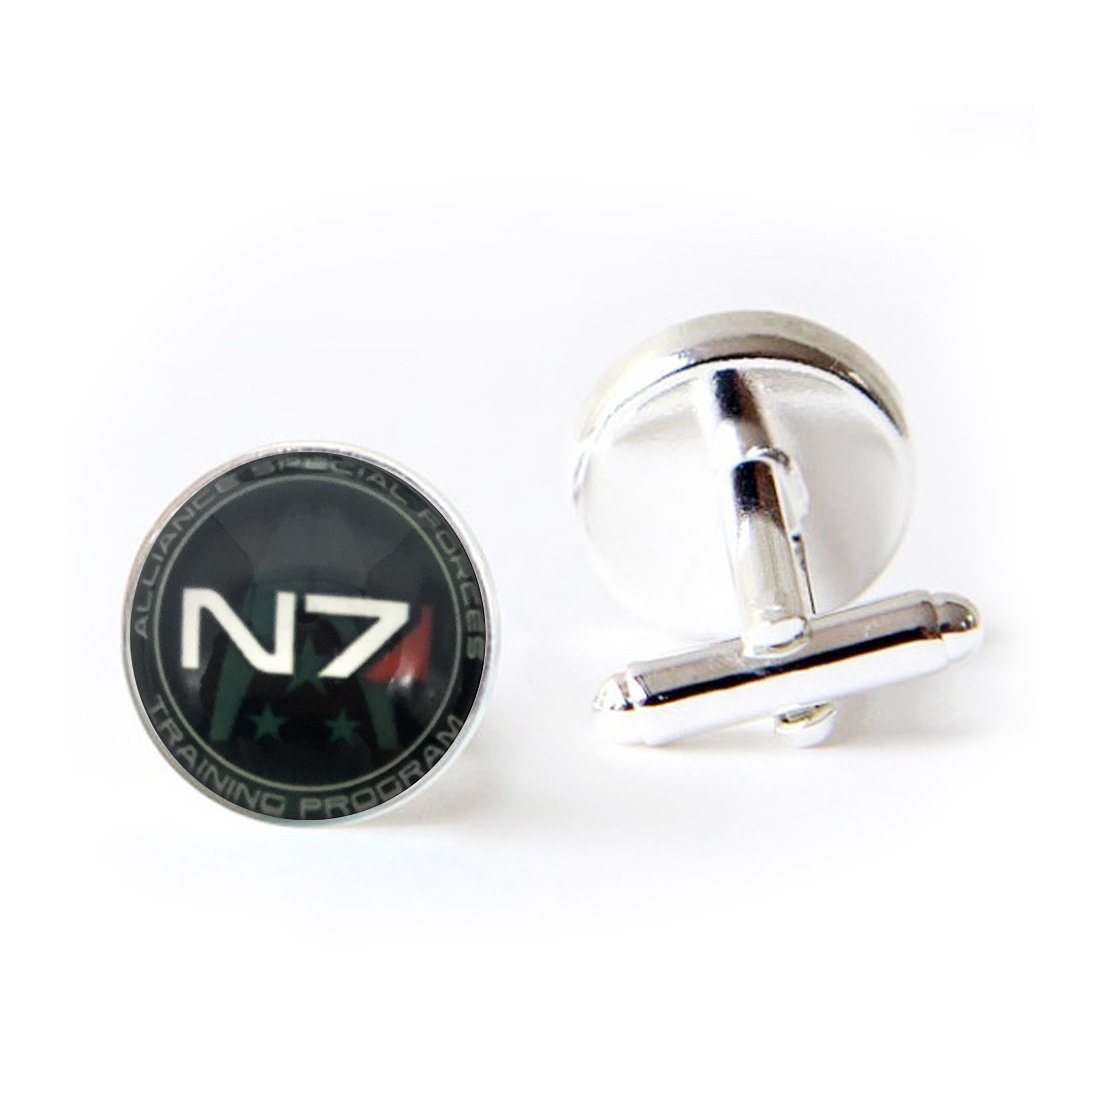 Unique Round Cufflinks Set N7 Glass Cuff Dress Shirt Links Wedding Business Anniversary Gift for Him